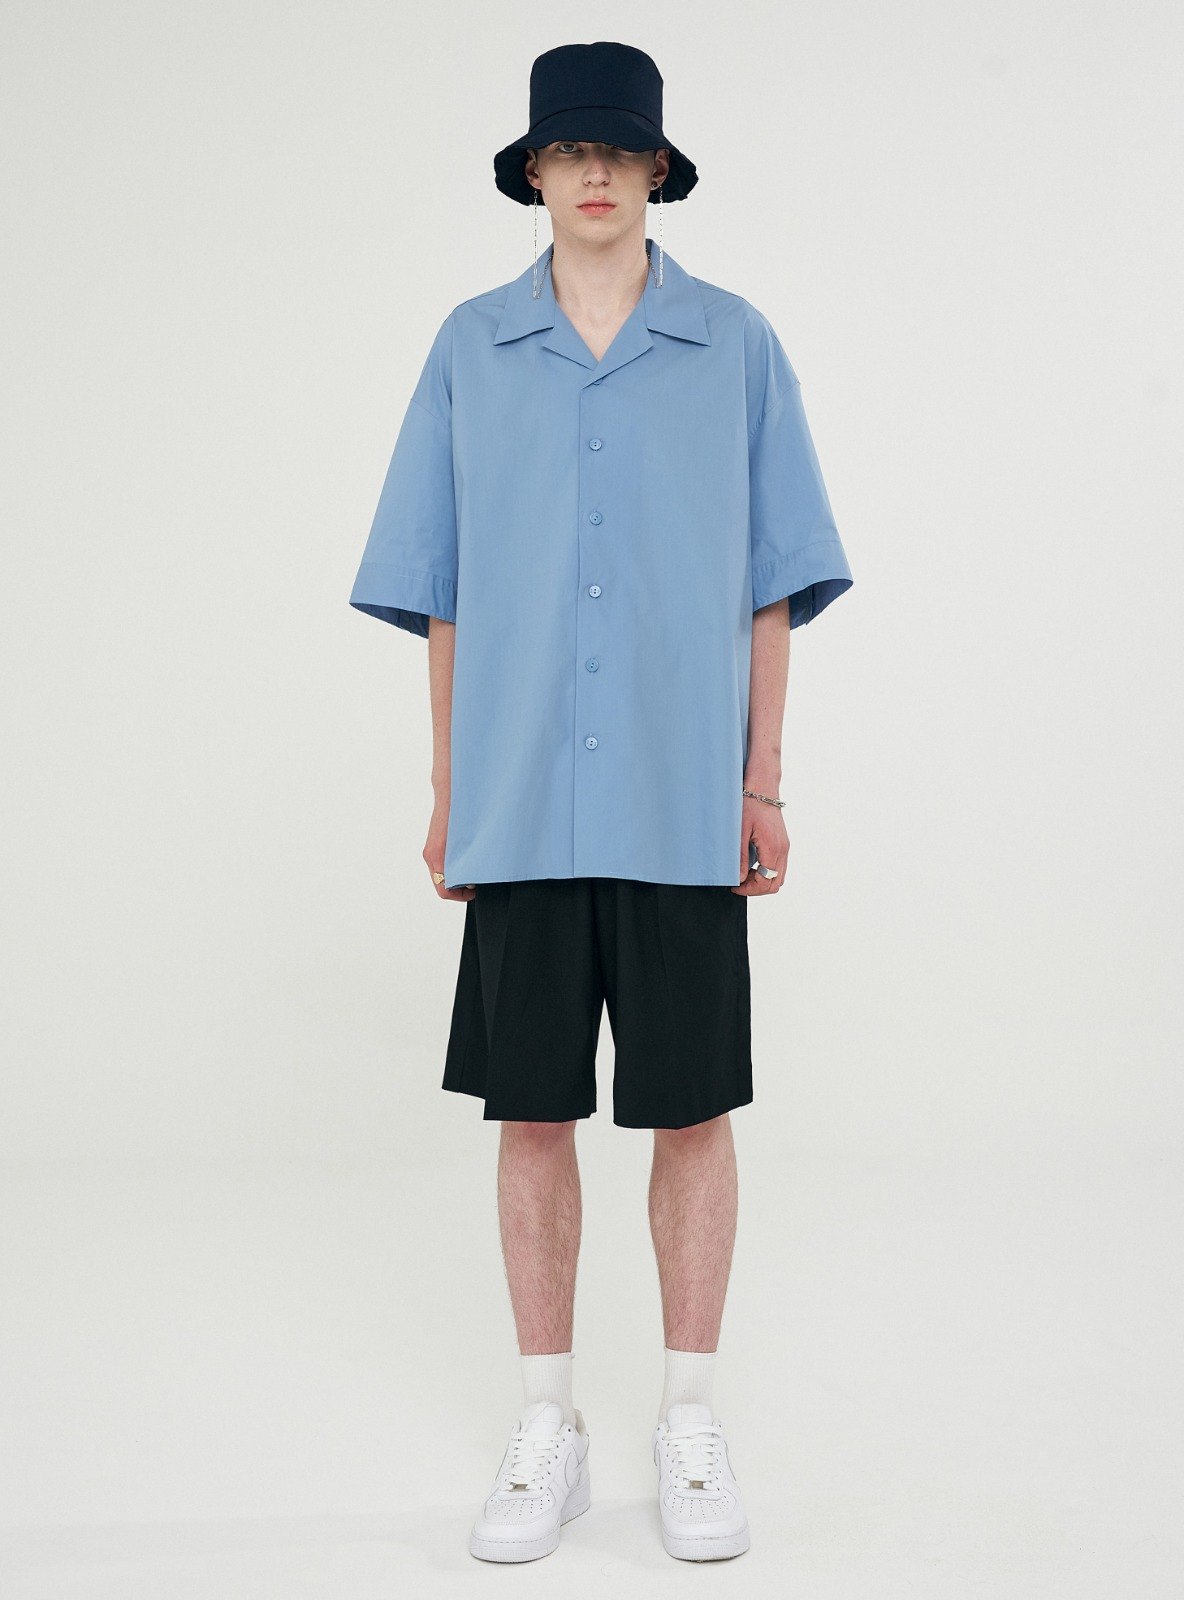 OPEN COLLAR AVANTGARDE SHIRT LIGHT BLUE